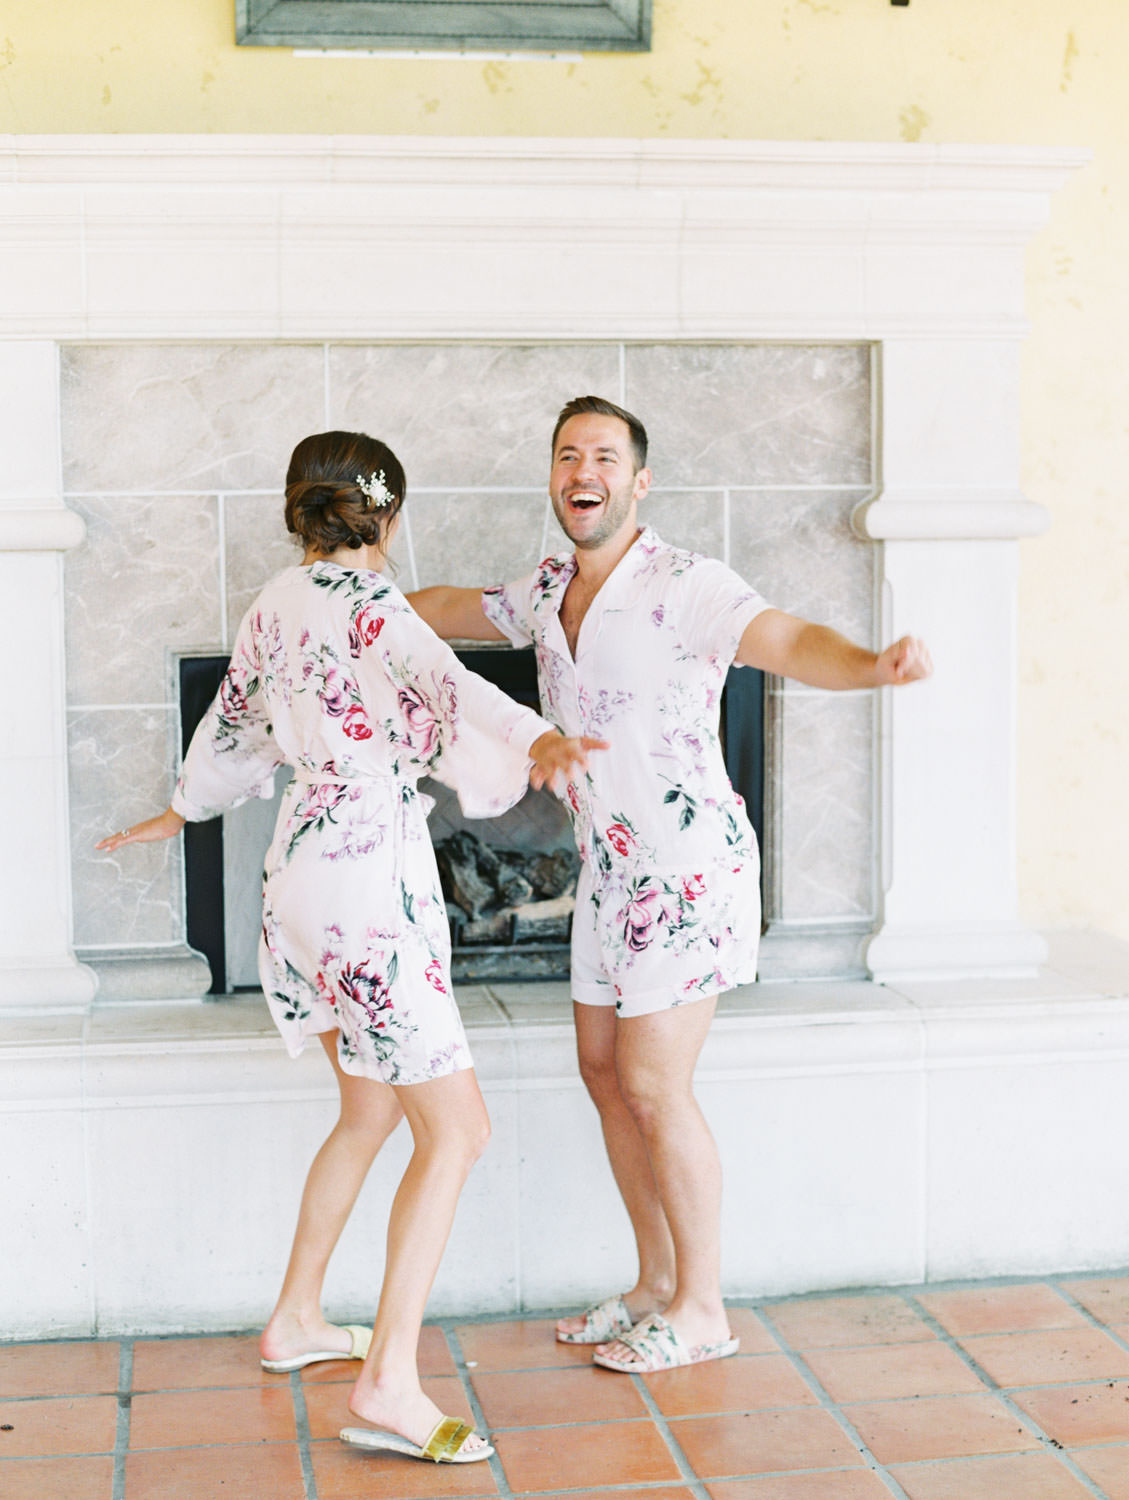 Bridesman in floral pjs to match bridesmaids in floral robes dancing and having fun before the wedding. Miramonte Resort wedding. Film photography by Cavin Elizabeth.